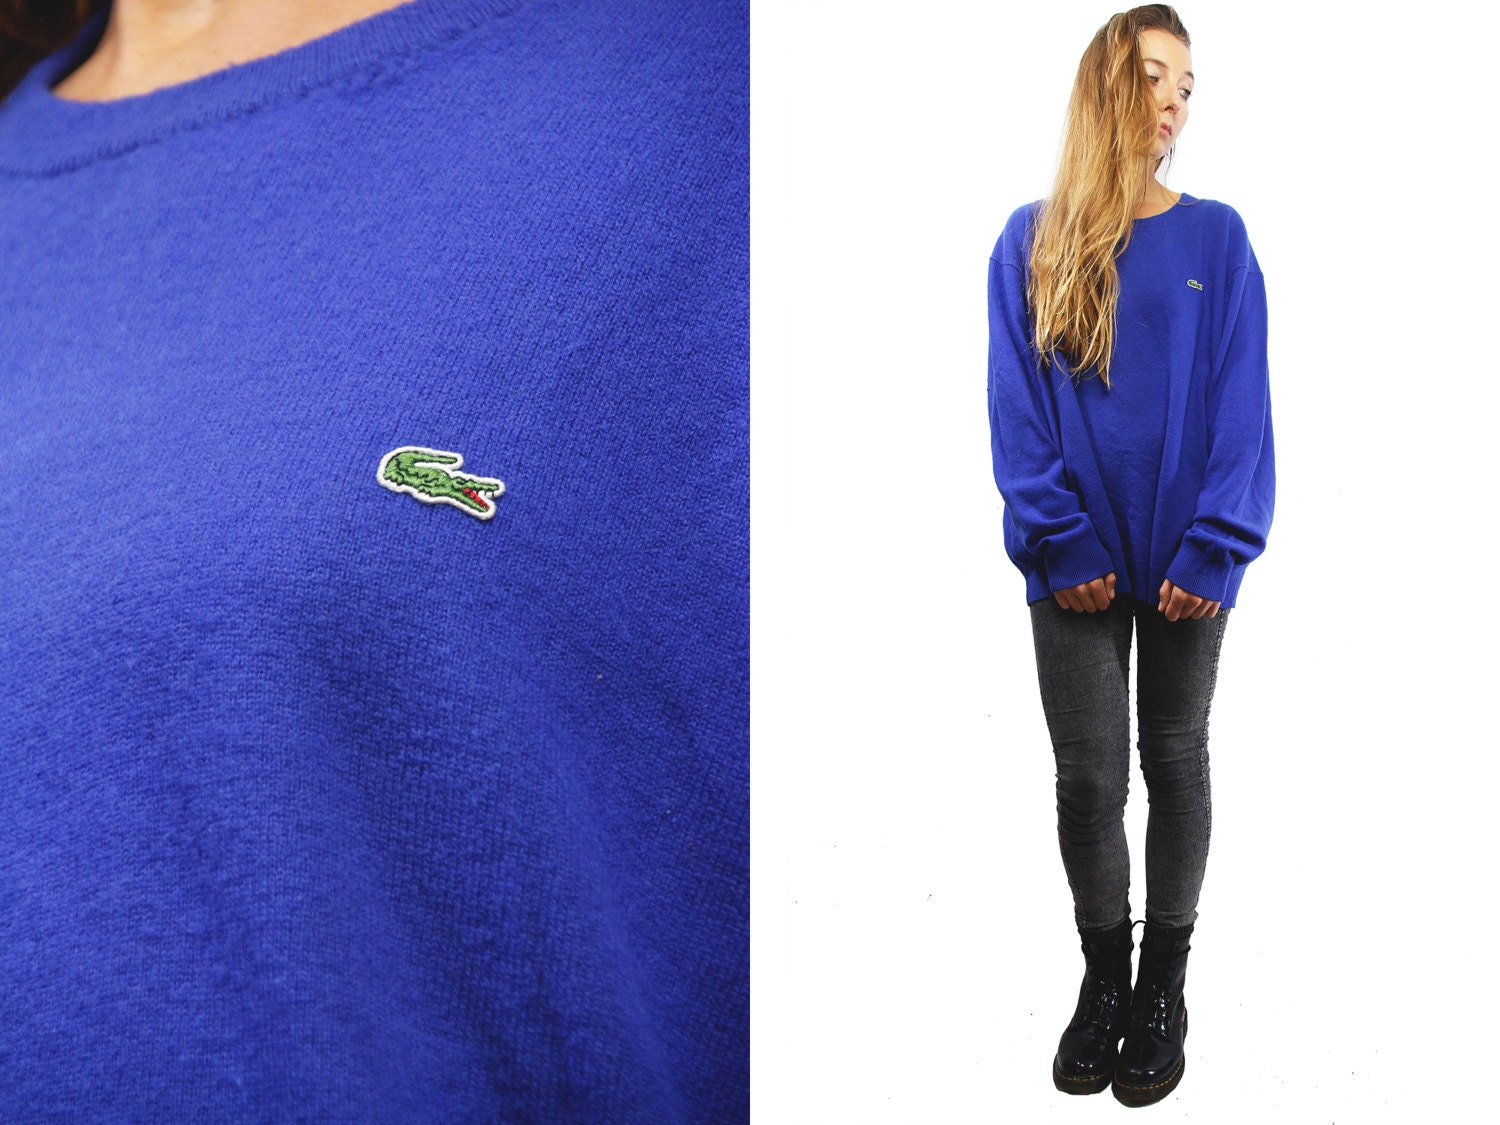 cheapest price size 7 best wholesaler Sweater LACOSTE / Blue Lacoste Jumper / Lacoste Vintage ...